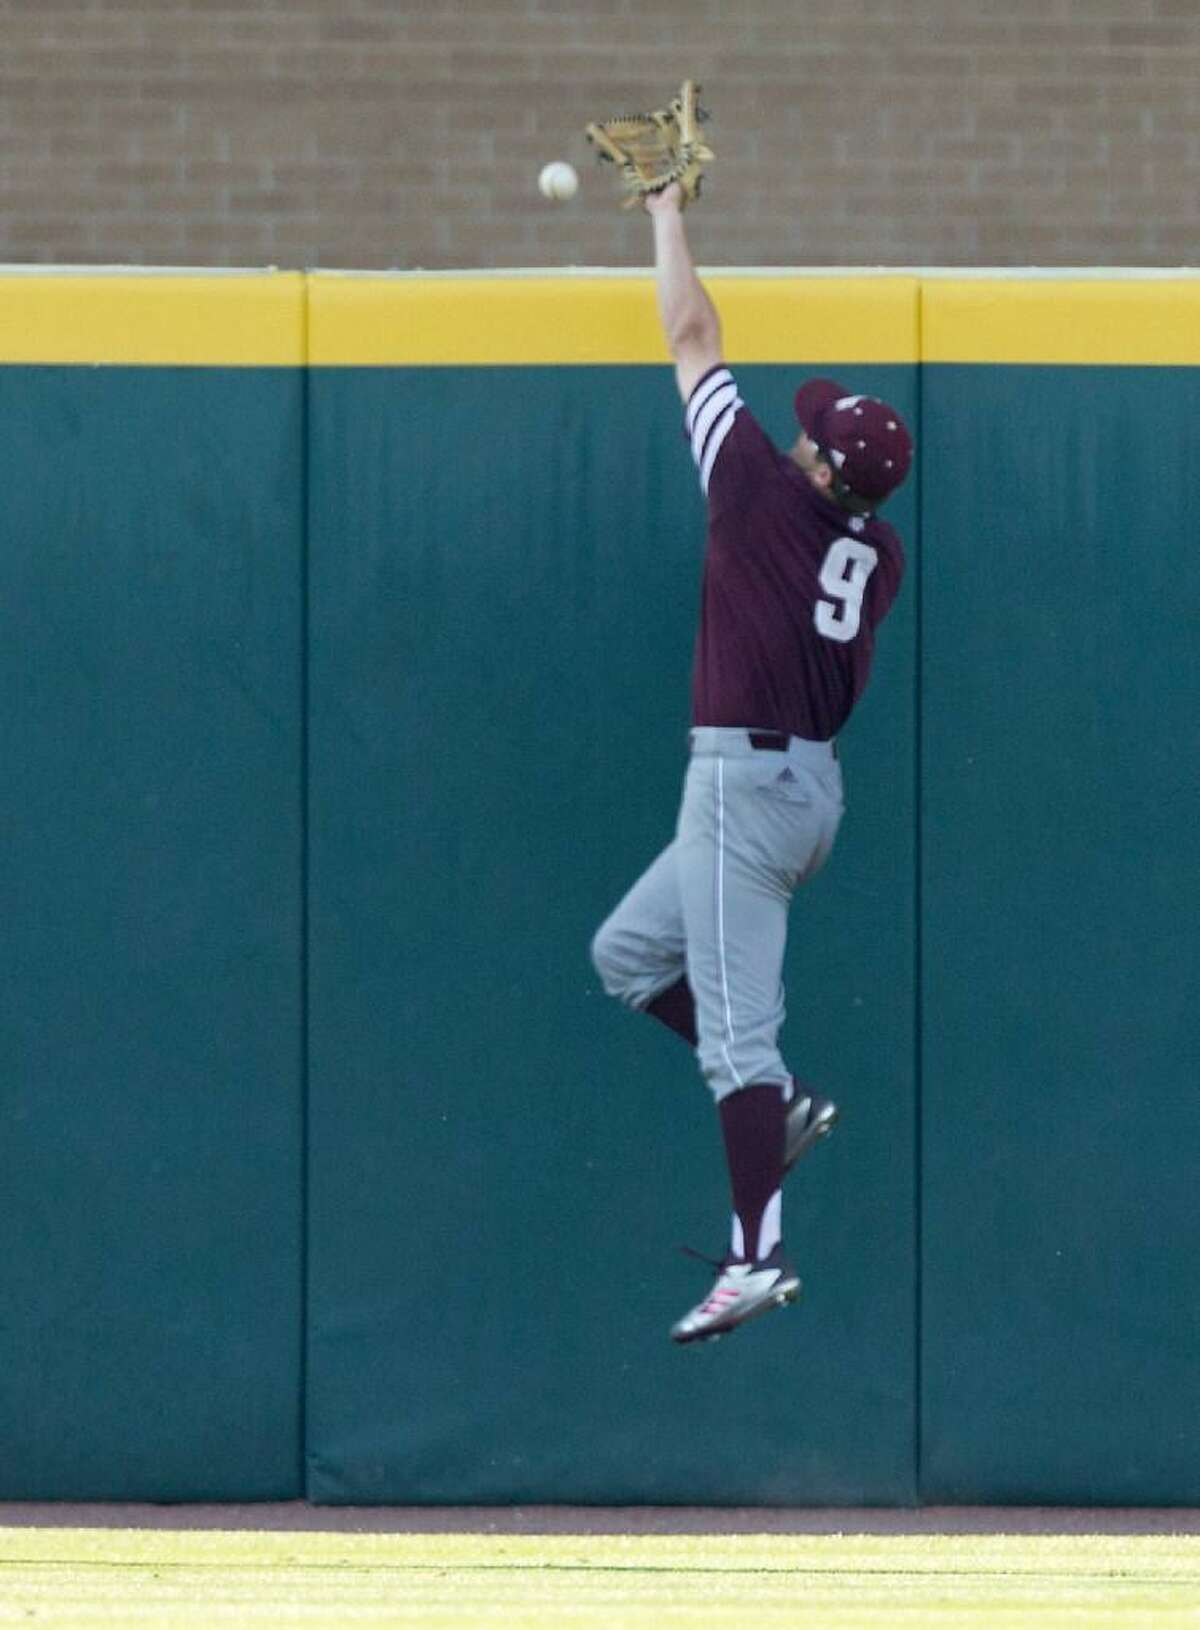 Texas A&M outfielder Walker Pennington (9) misses a ball hit by Davidson outfielder Cam Johnson (10) during the fifth inning of an NCAA college baseball tournament super regional game Saturday, June 10, 2017, in College Station, Texas.